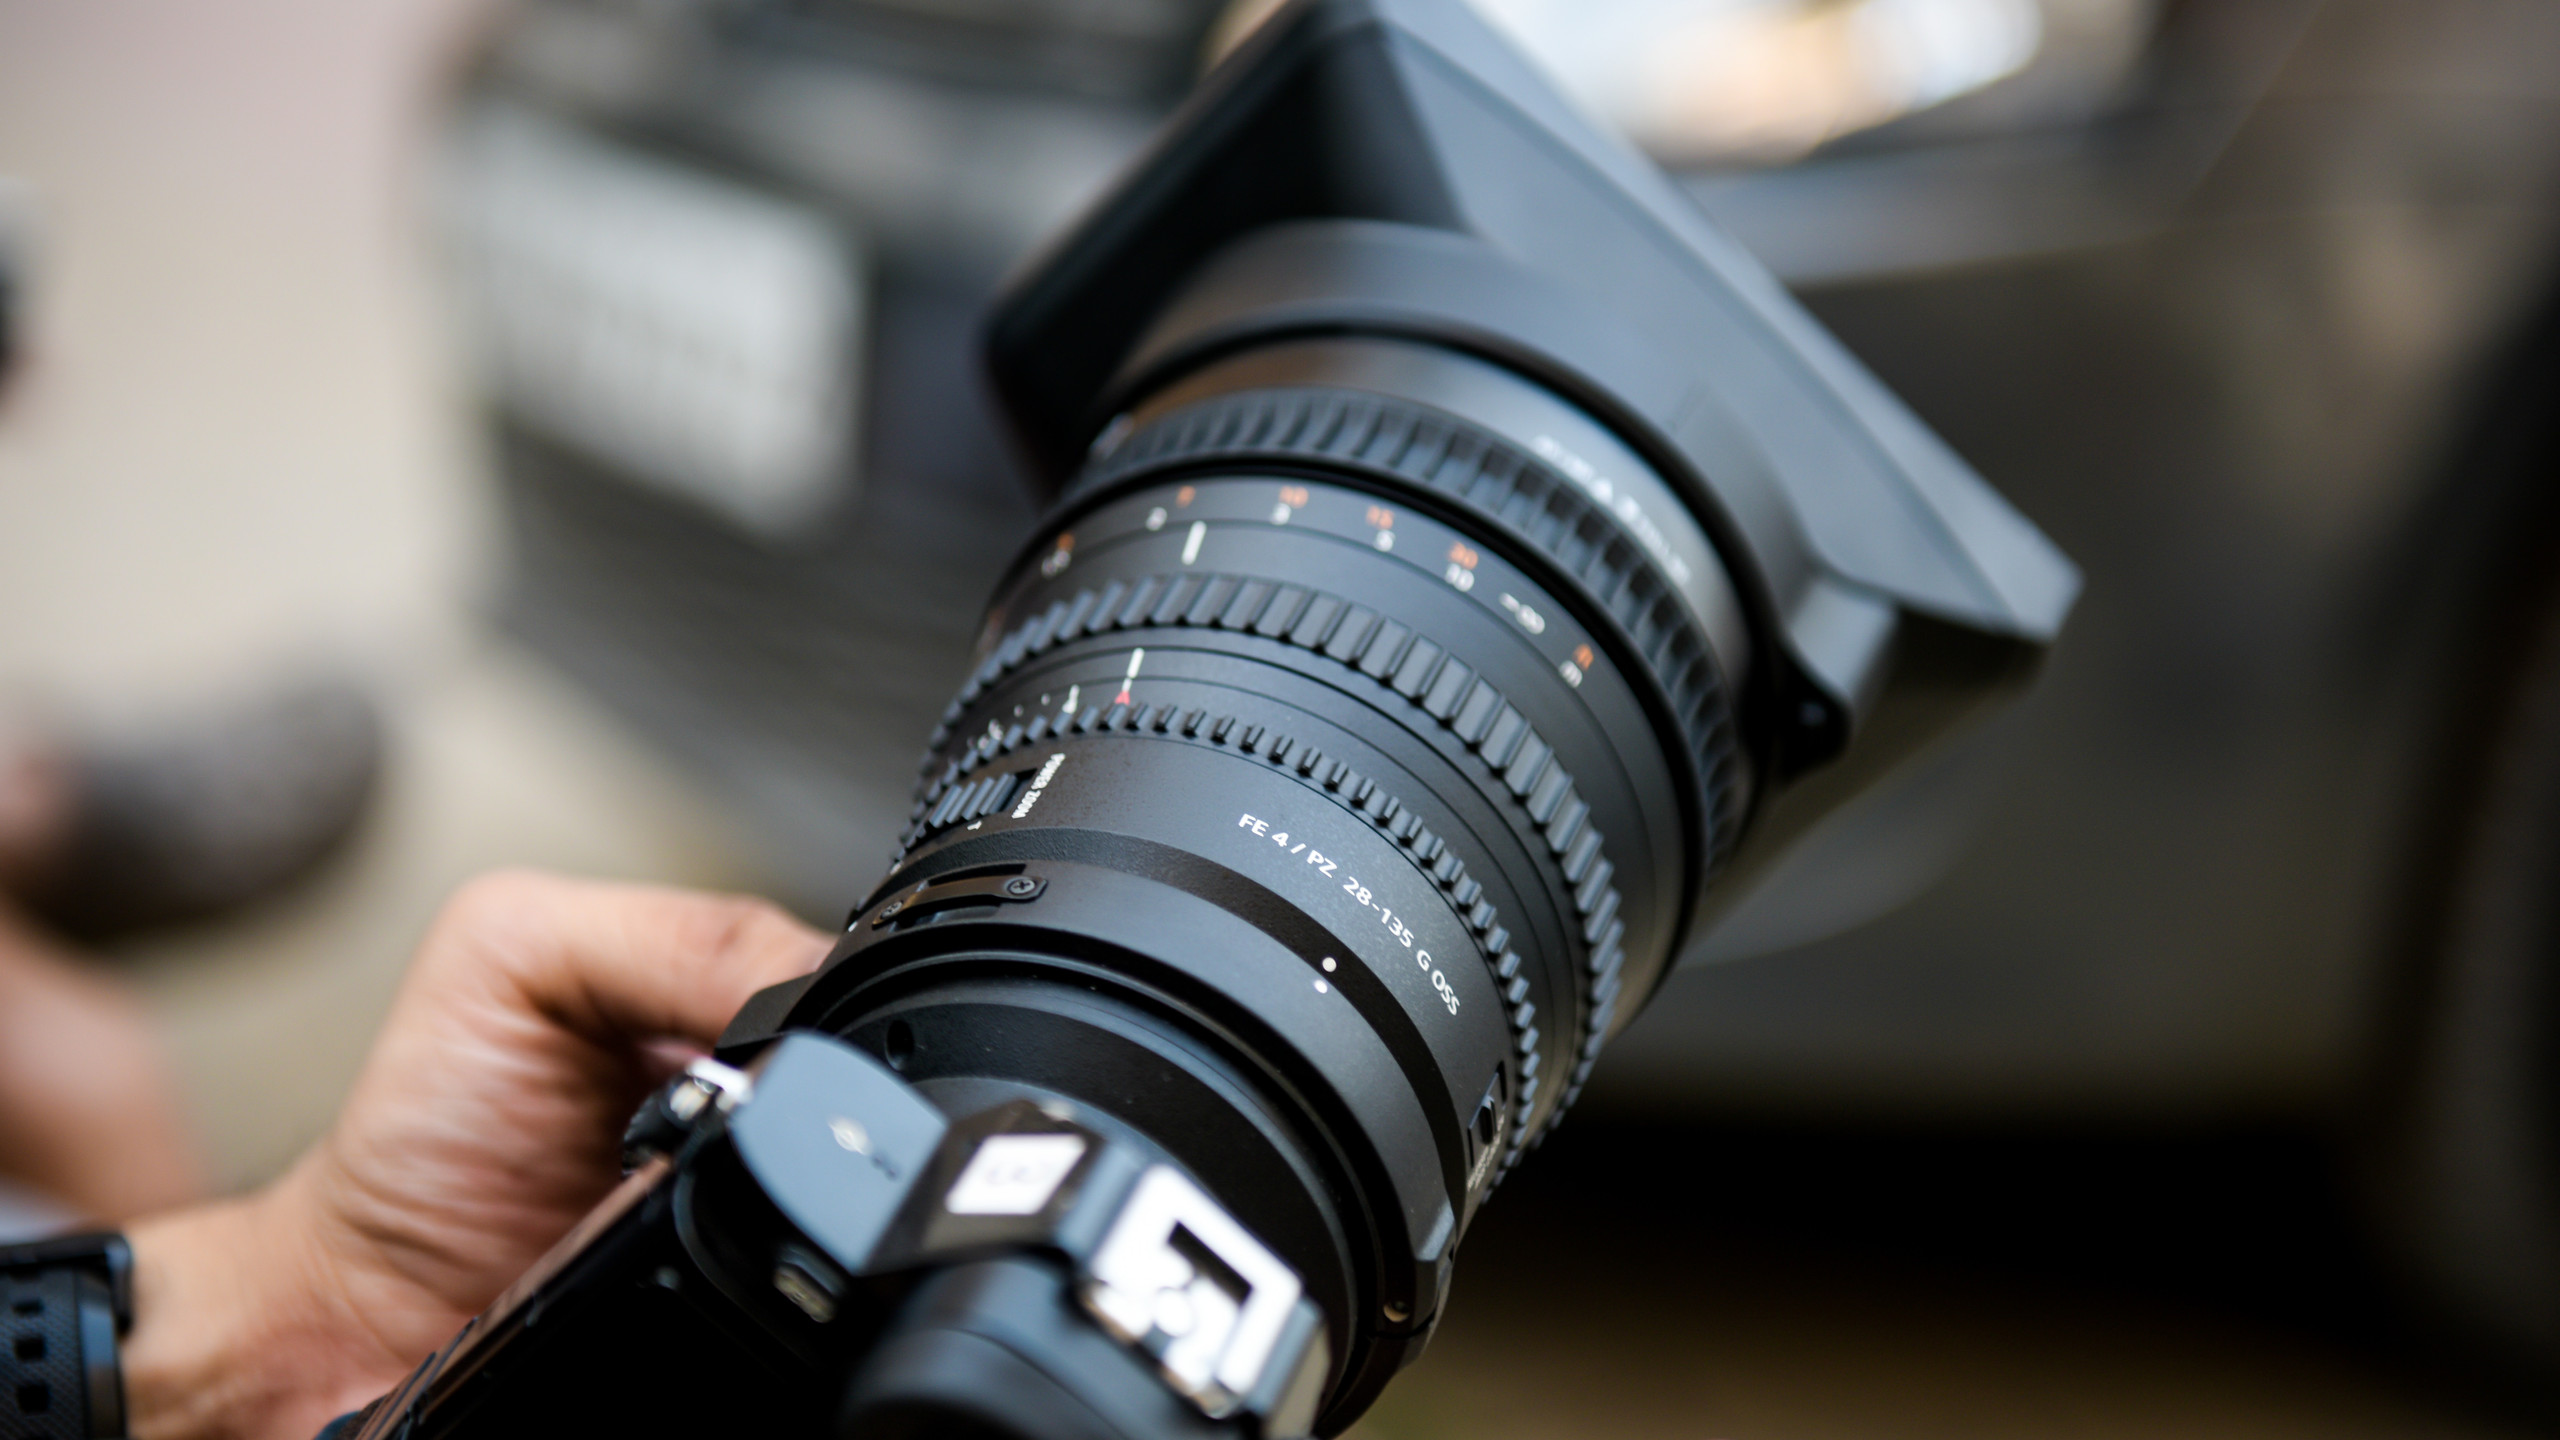 A professional event photography camera